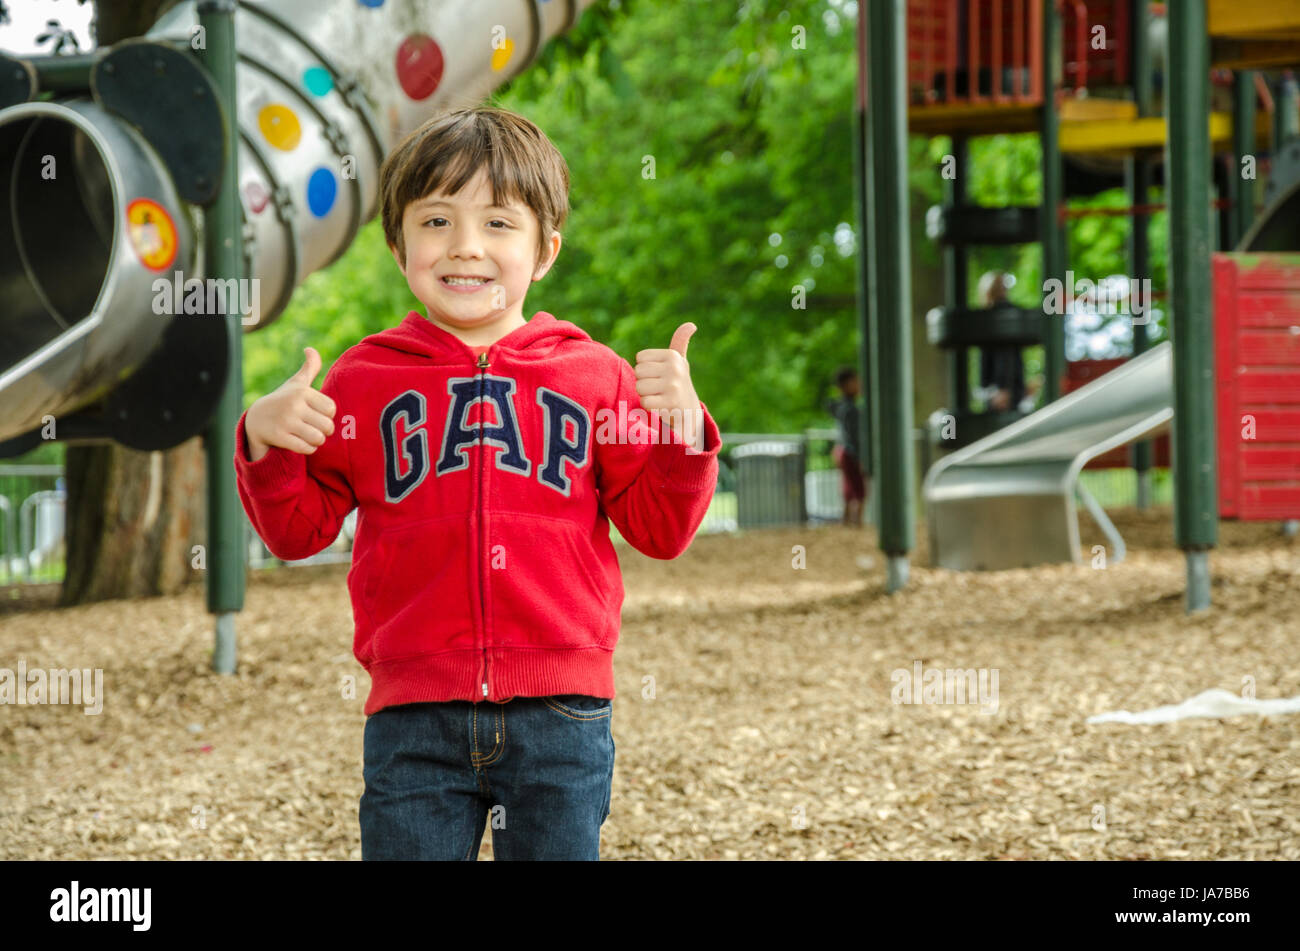 A young child playing in the children's playground in Prspect Park, Reading. - Stock Image